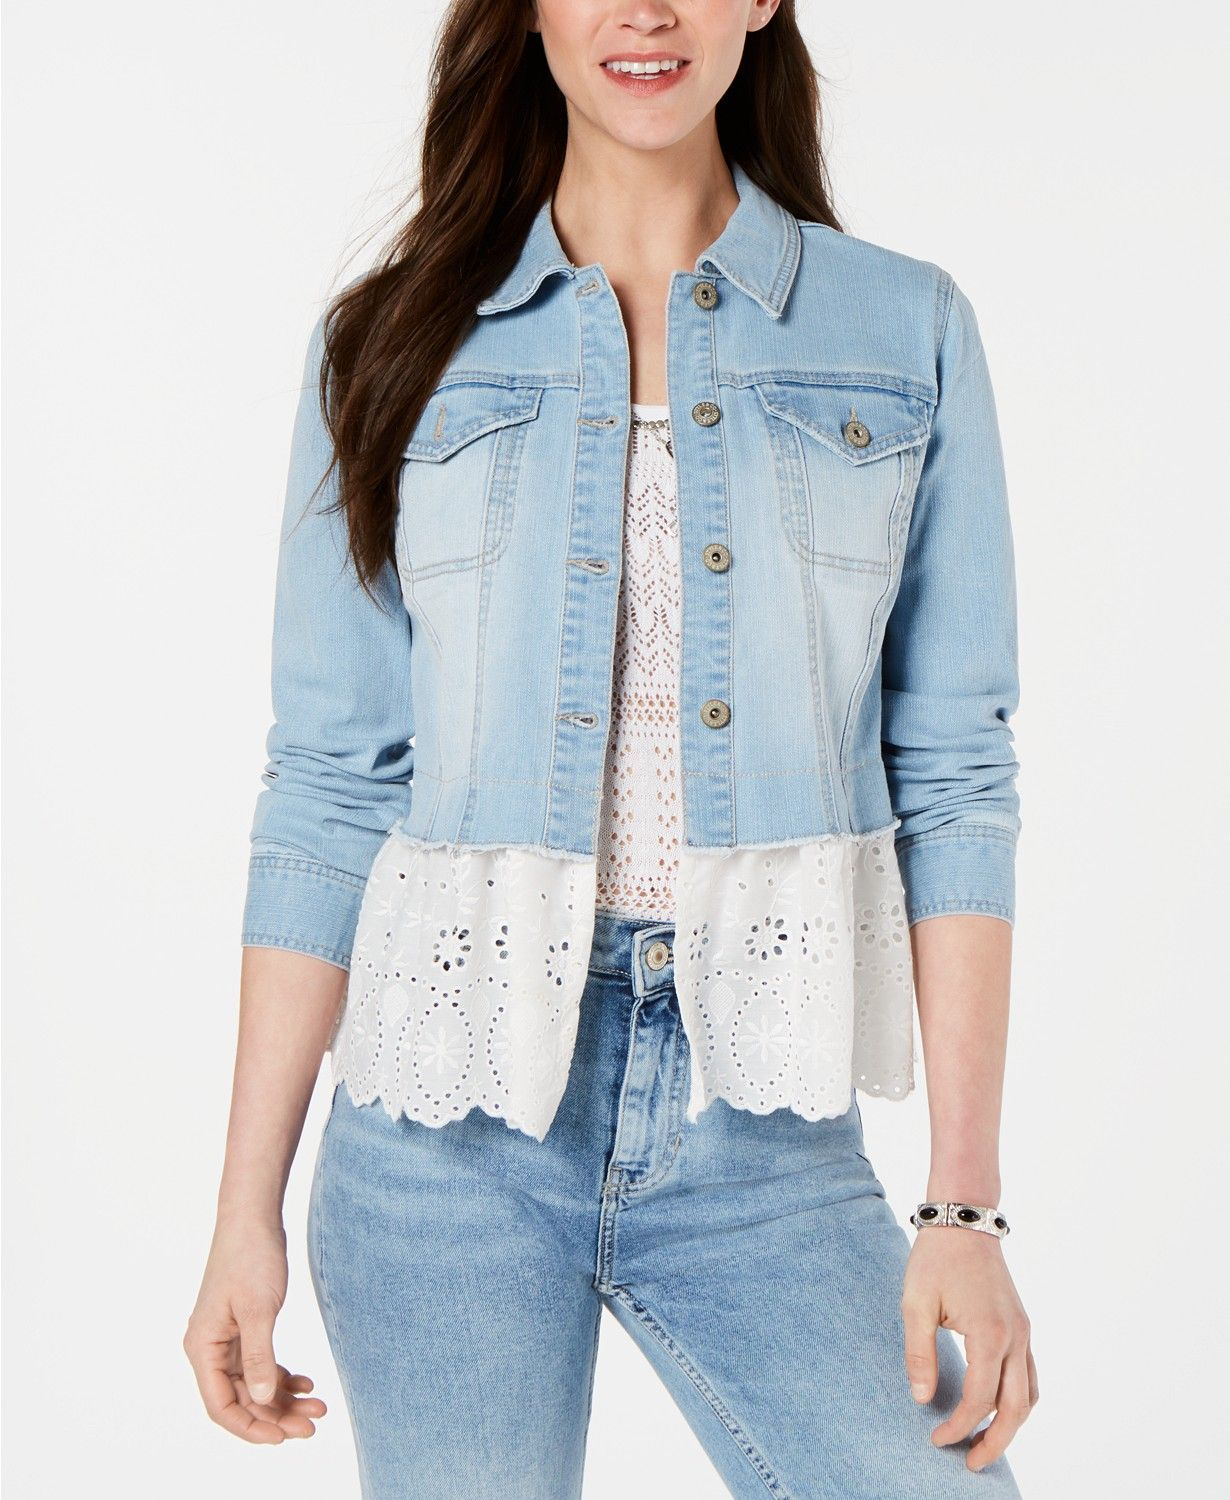 Macy's Denim and Eyelet Jacket.jpg